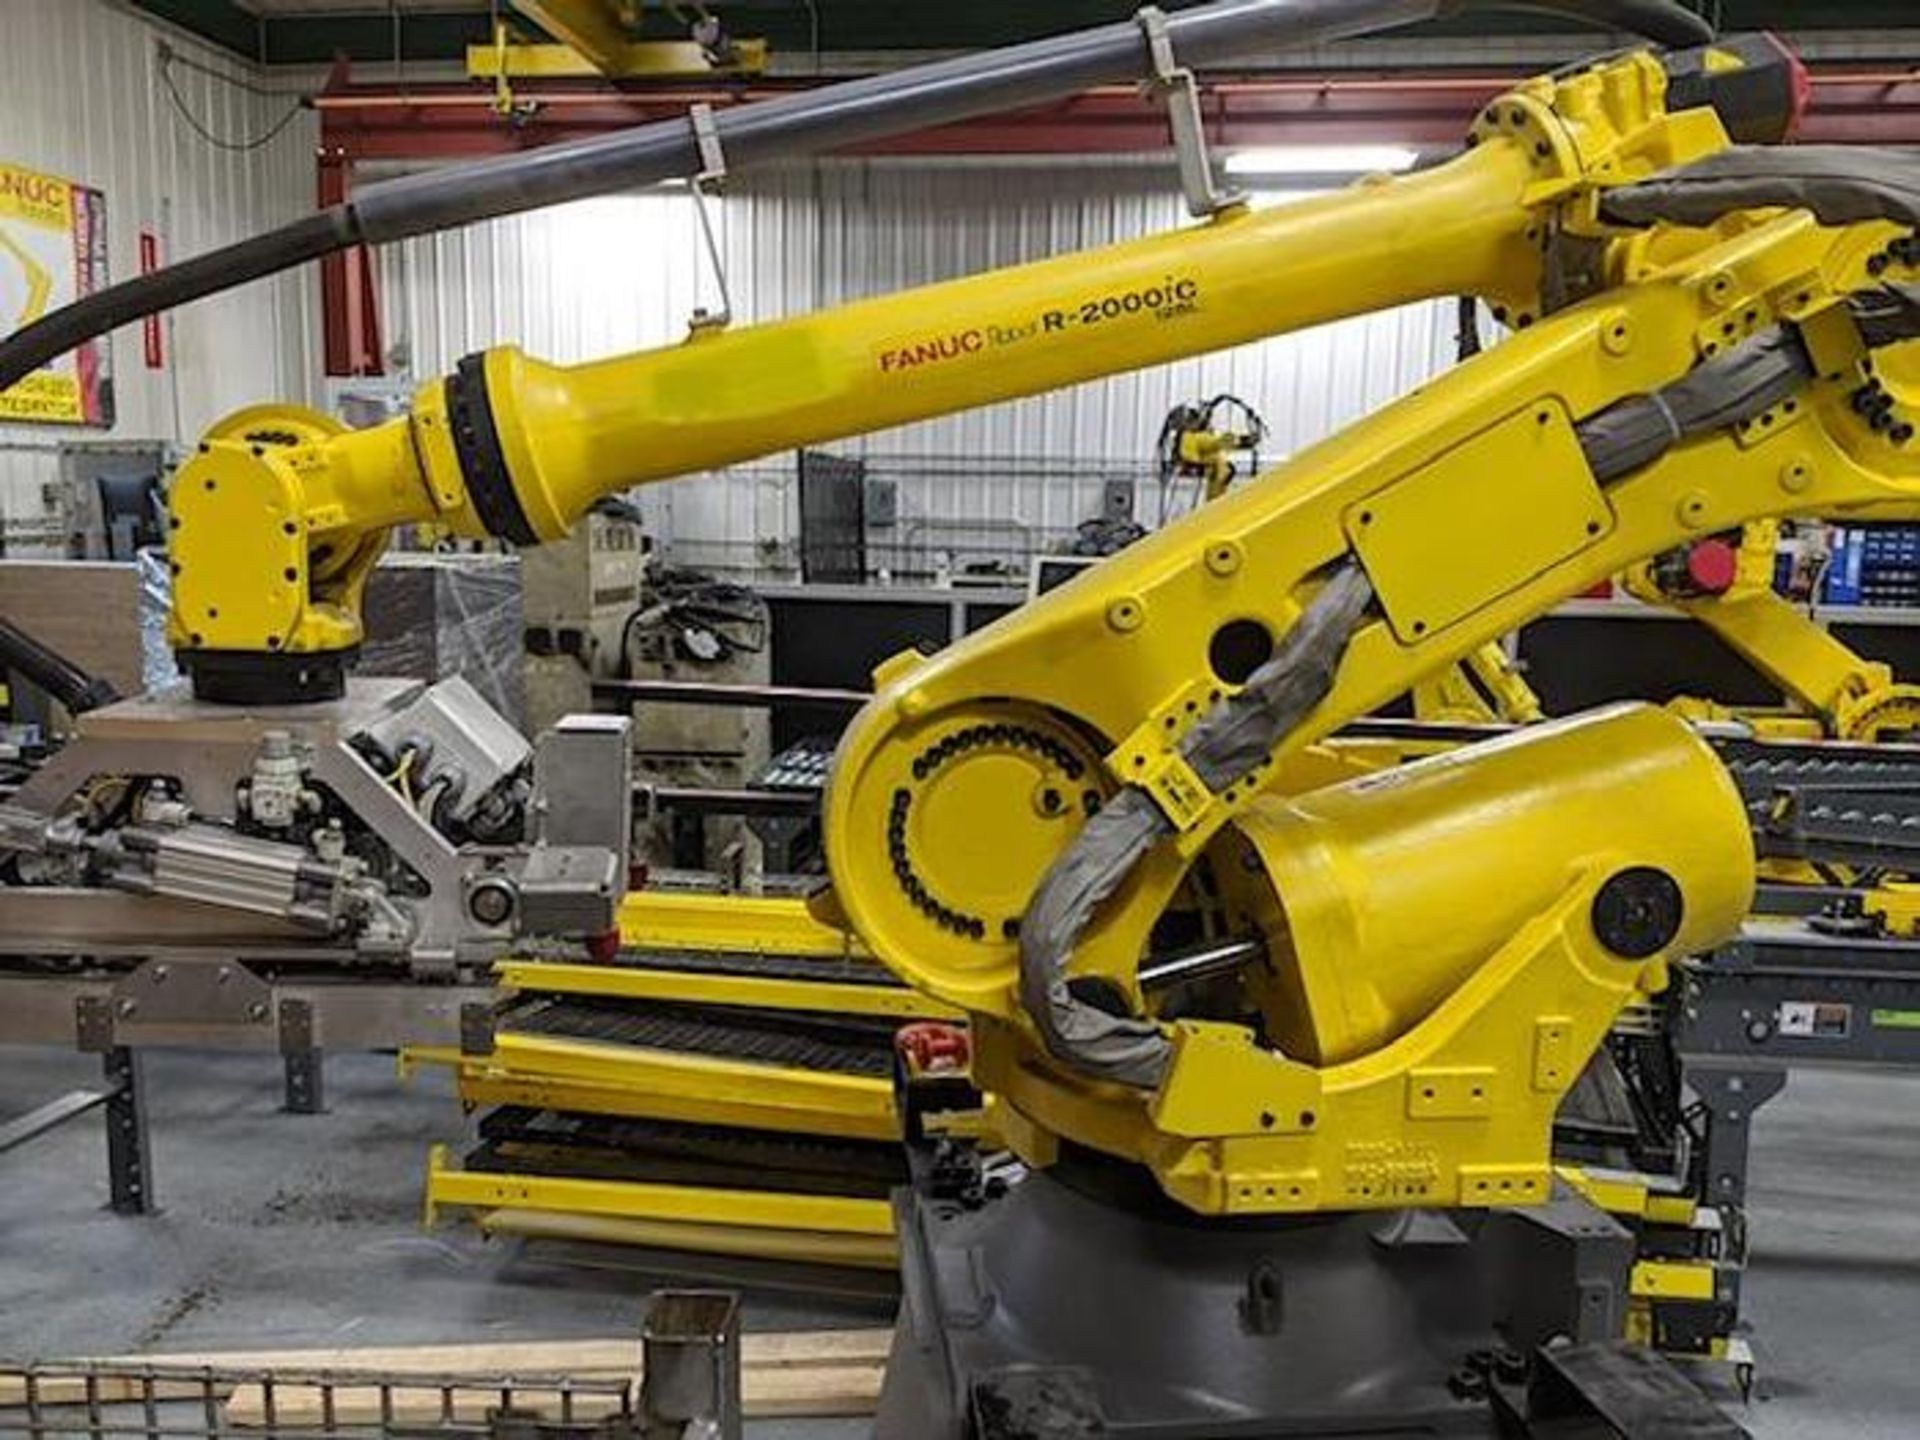 FANUC R2000iC/125L 6 AXIS CNC ROBOT WITH R30iB CONTROLLER, IR VISION, CABLES & REACH - Image 14 of 17